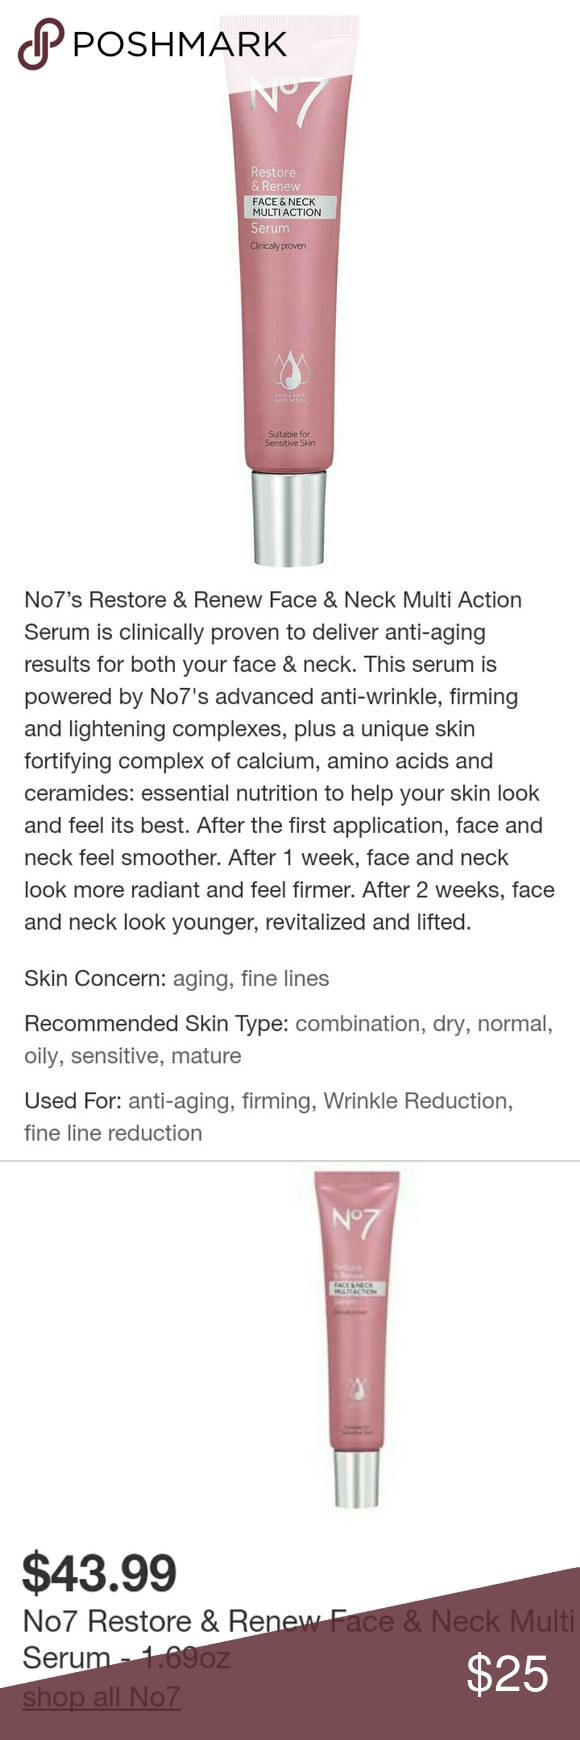 *New*No. 7 Restore & Renew Anti-Aging Facial Serum Brand New Never Used. This product is amazing with the reviews to back up its quality! no. 7 Makeup